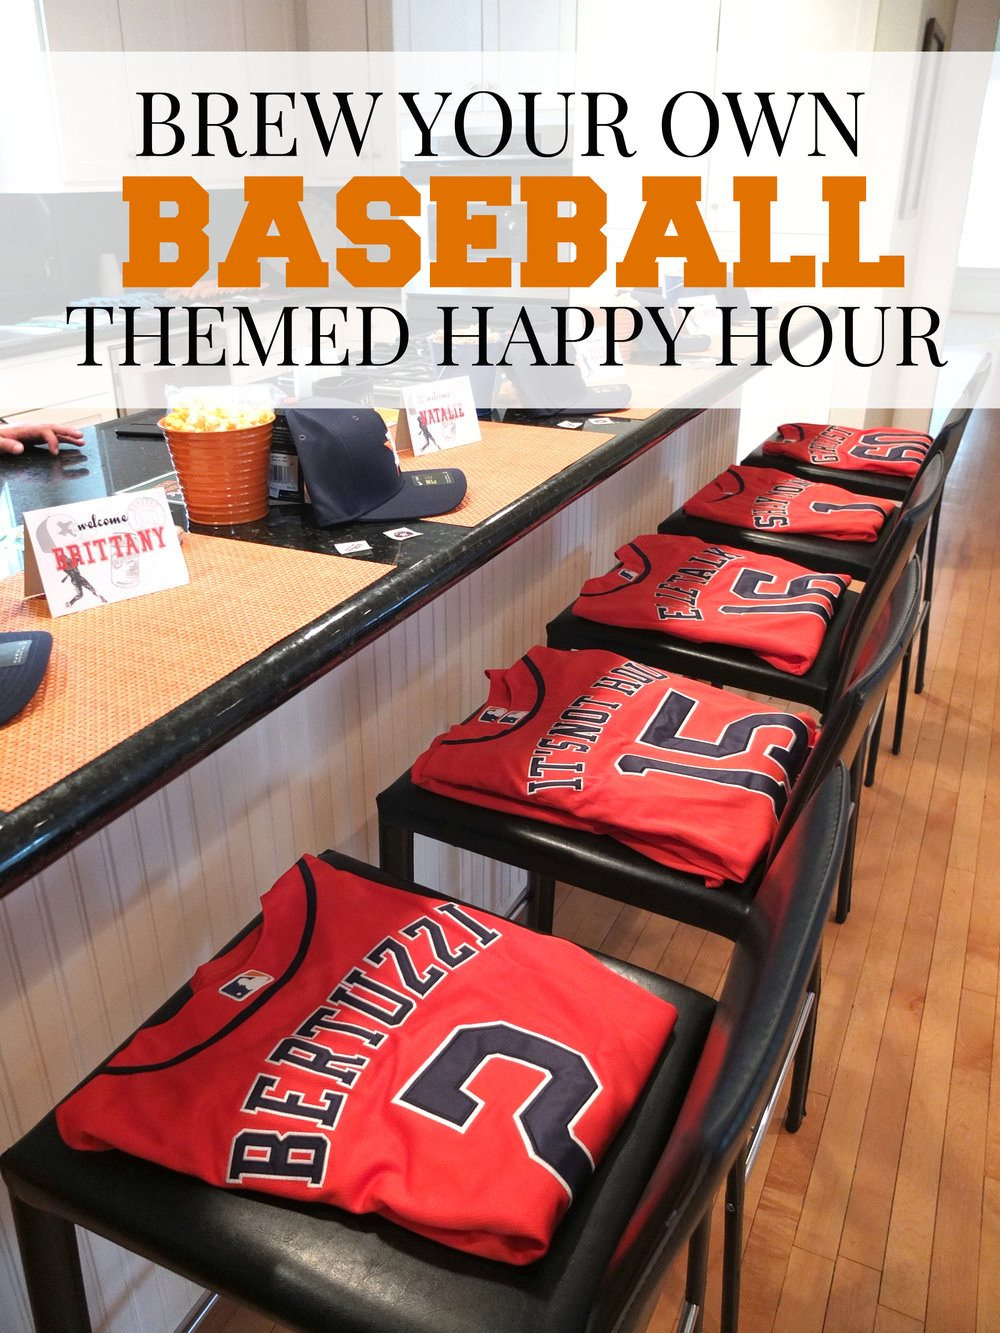 How to throw your own baseball and beer themed happy hour for your next baseball get together. This post is in collaboration with Circa Real Estate Houston.